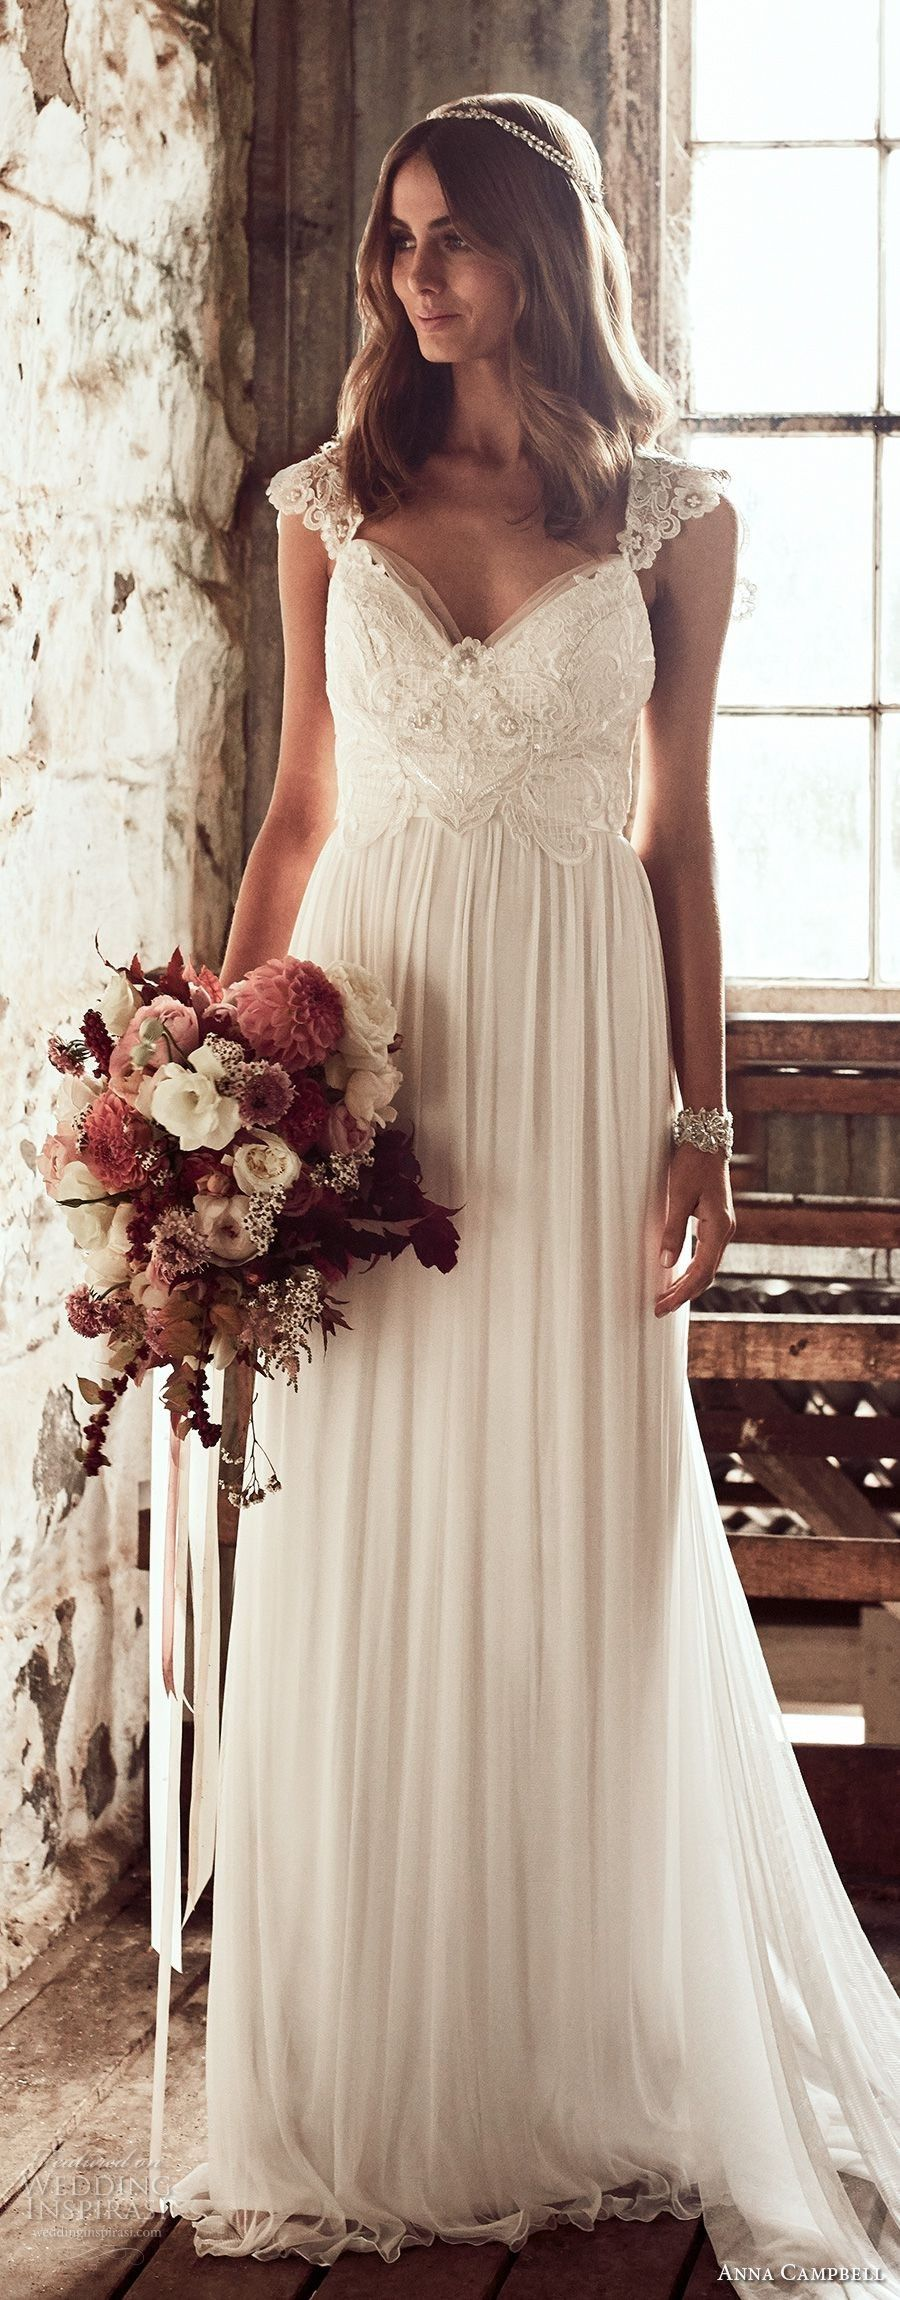 Wedding dresses lace get your dream wedding outfit coming from the